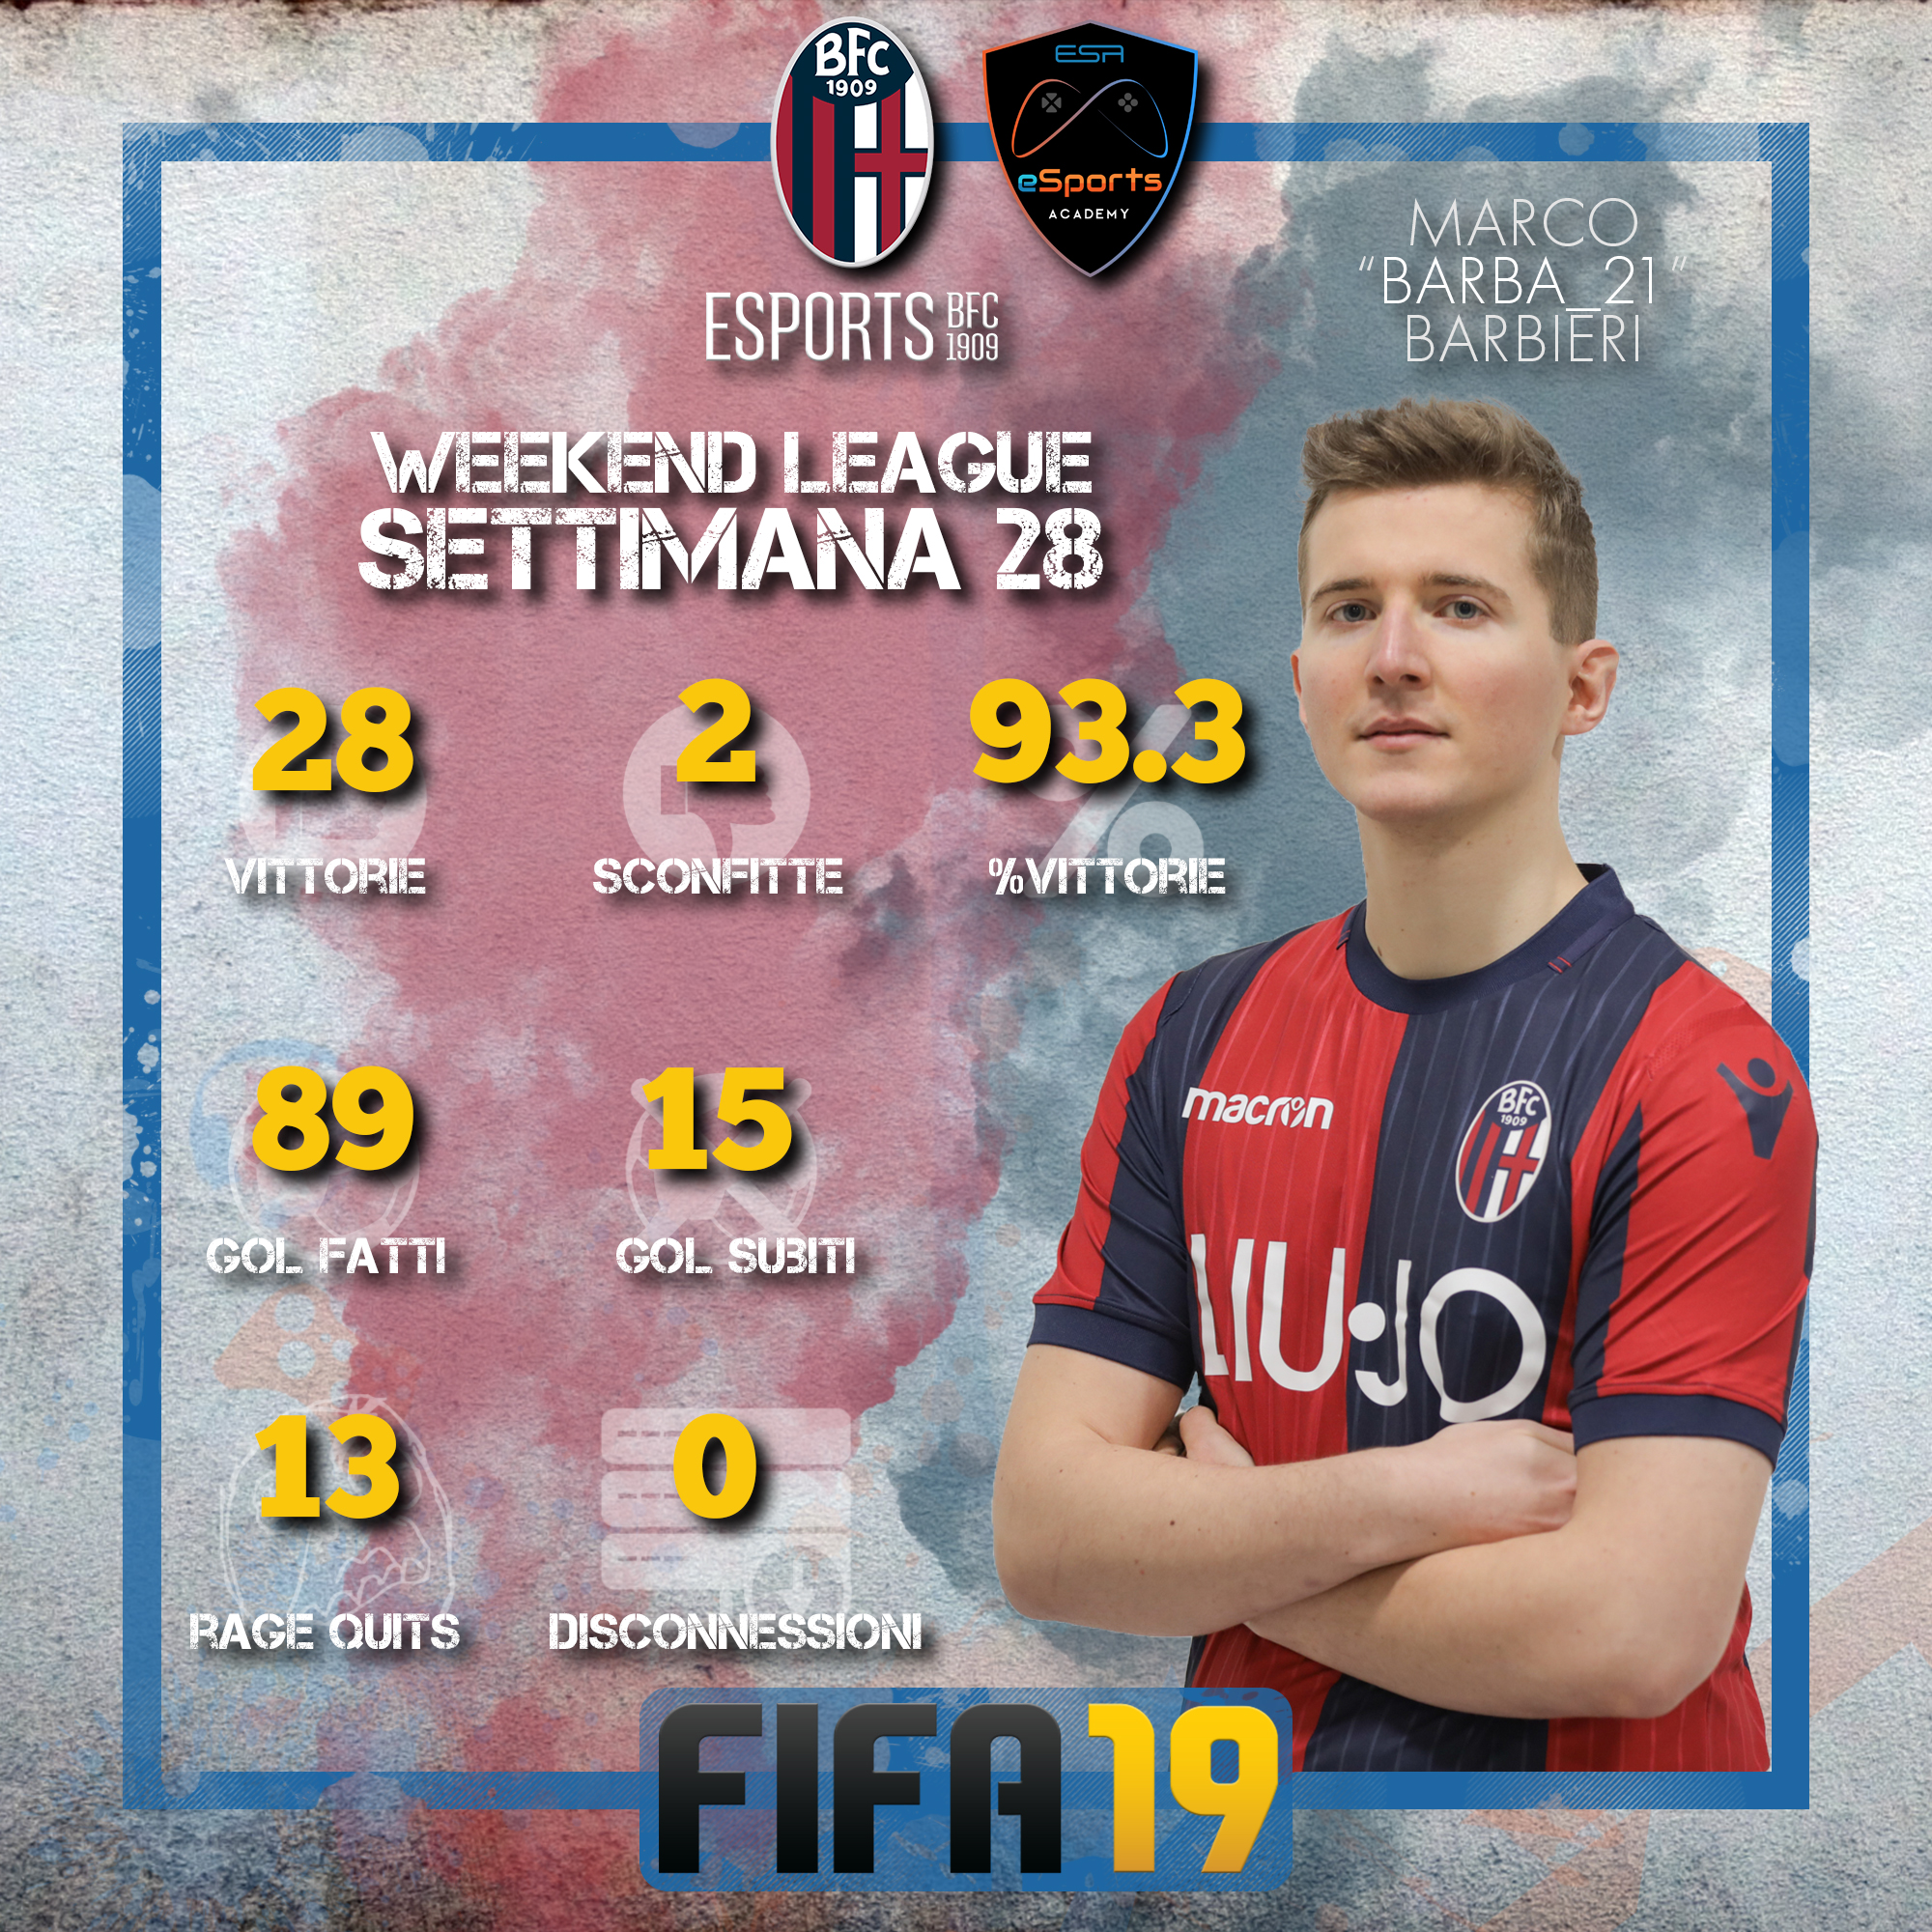 Fifa19_Weekend League_Week28_Barba_21.jpg